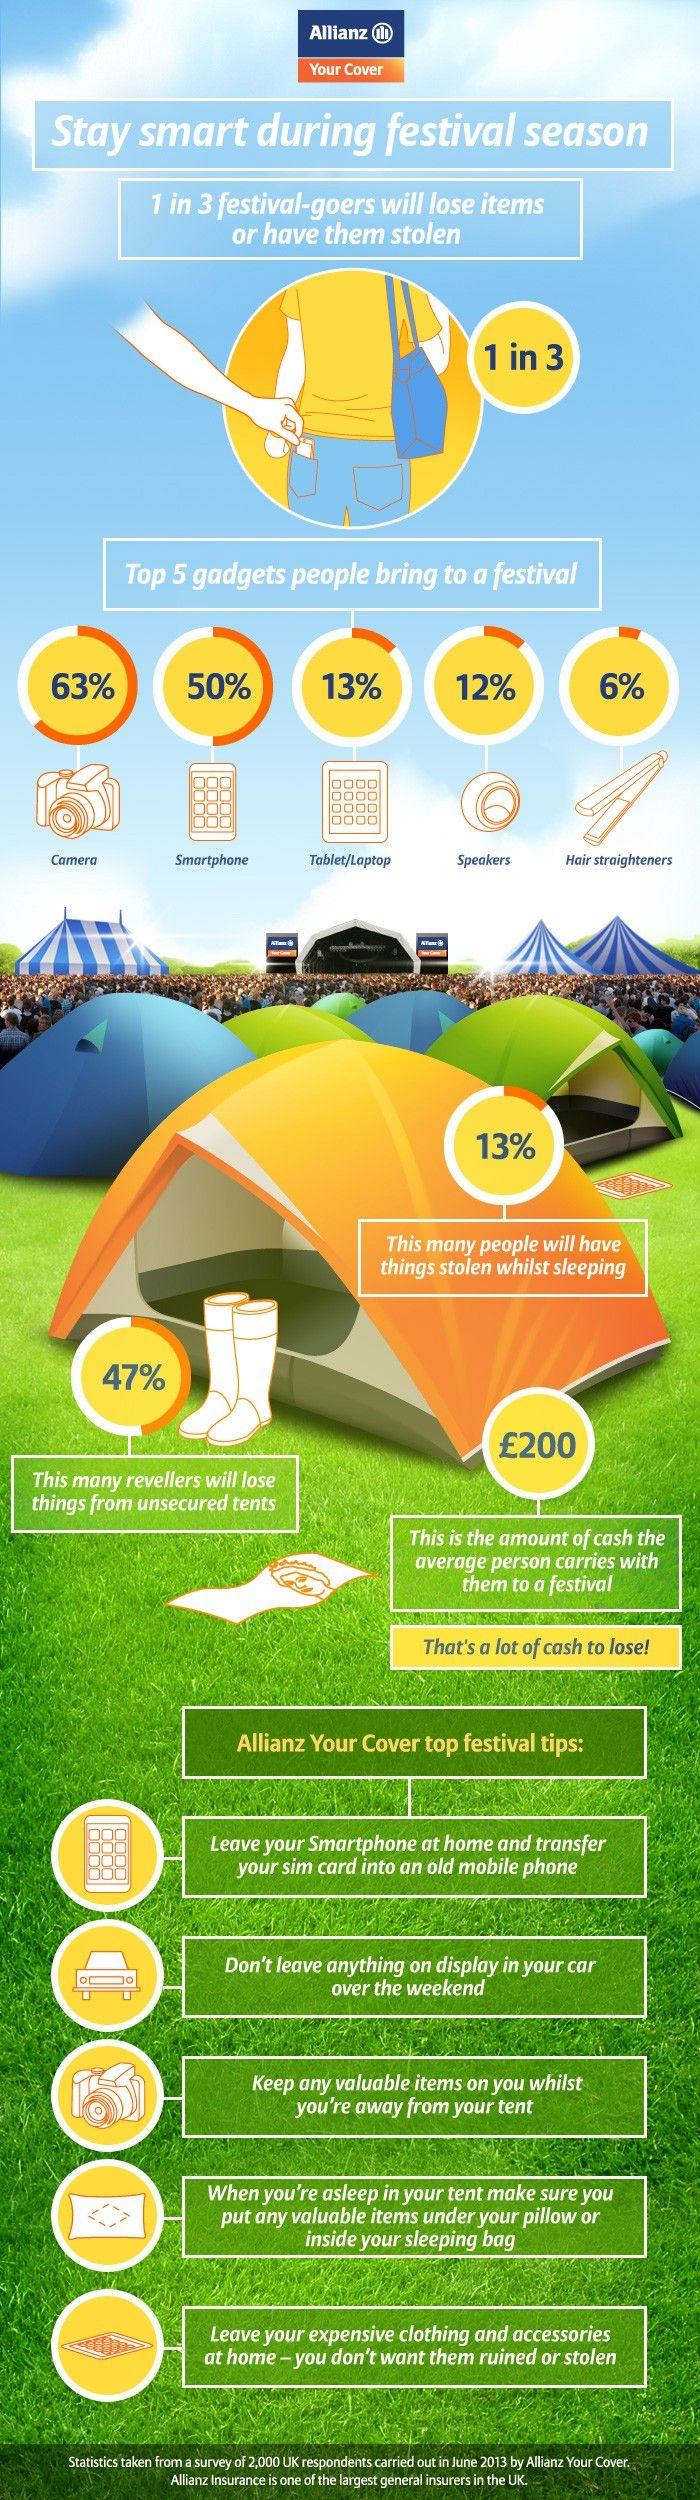 Although we try very hard to create a safe environment for our festival goers, we want you to know some statistics on thievery at festivals! Be careful!